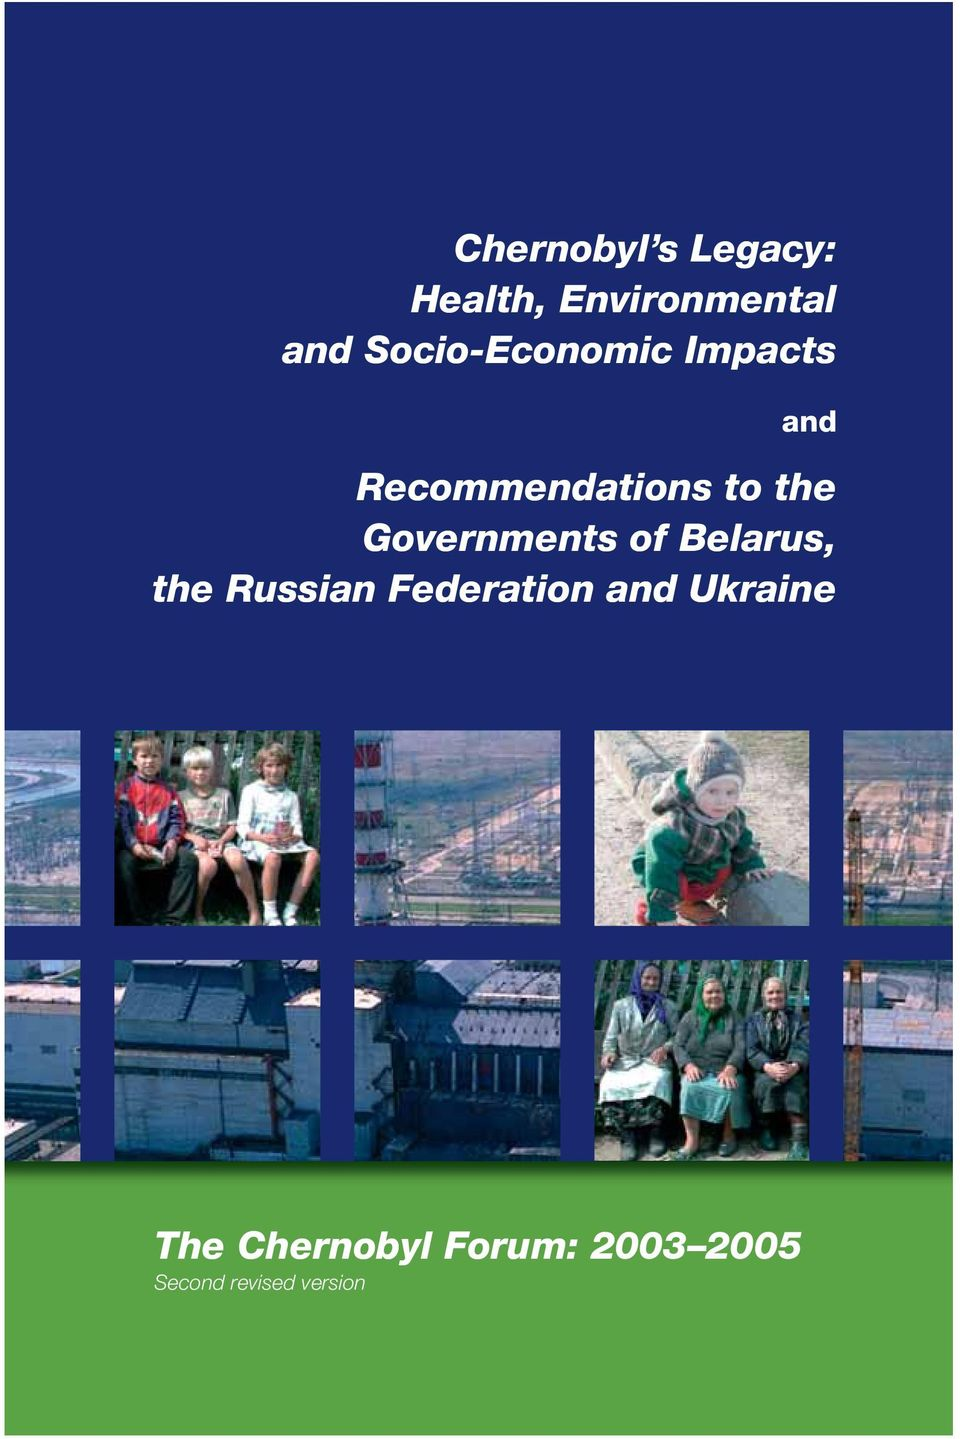 Governments of Belarus, the Russian Federation and